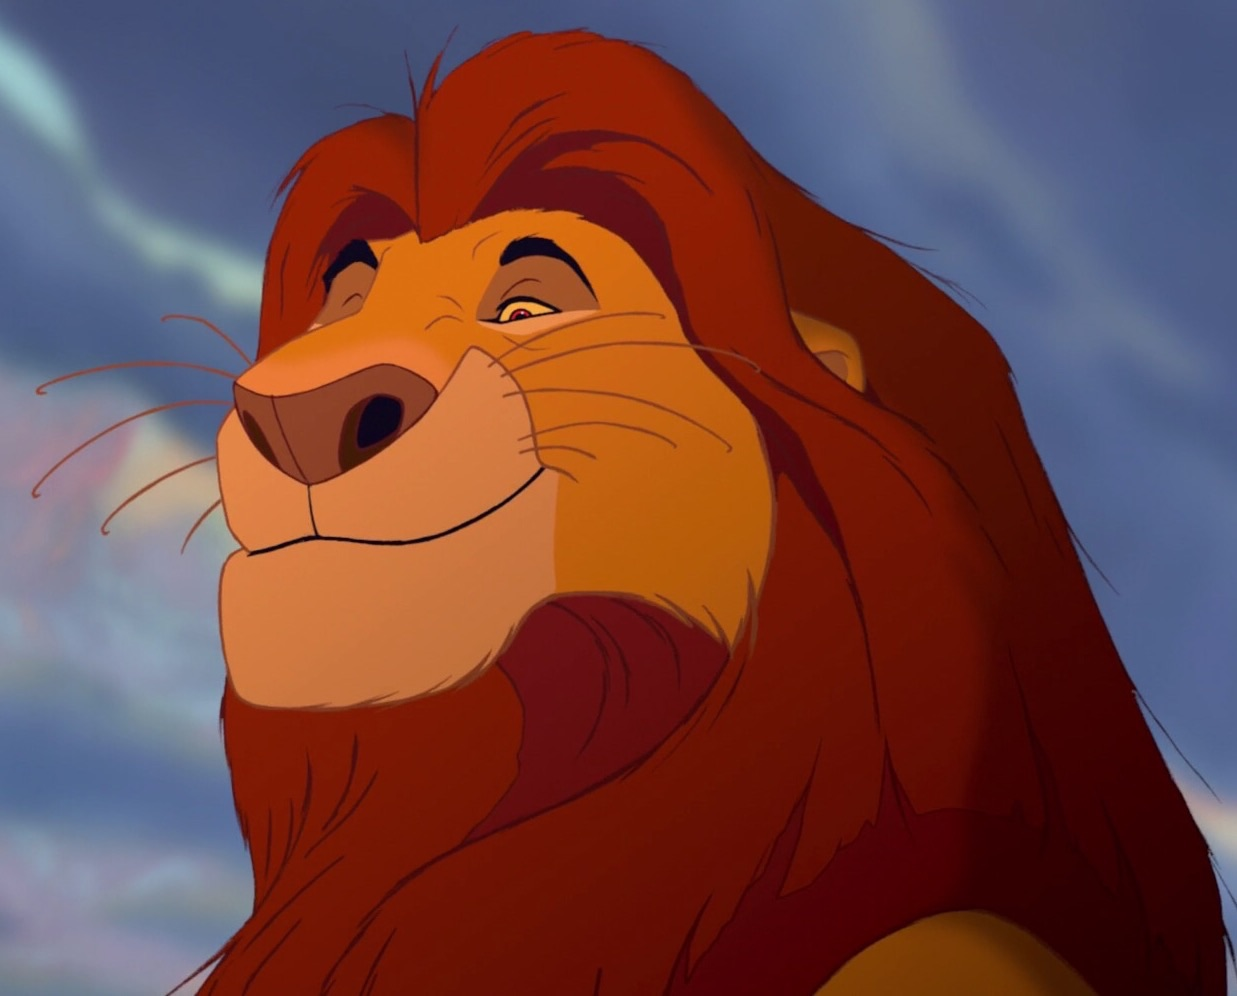 'Lion King' Remake Casts Donald Glover as Simba, James ...